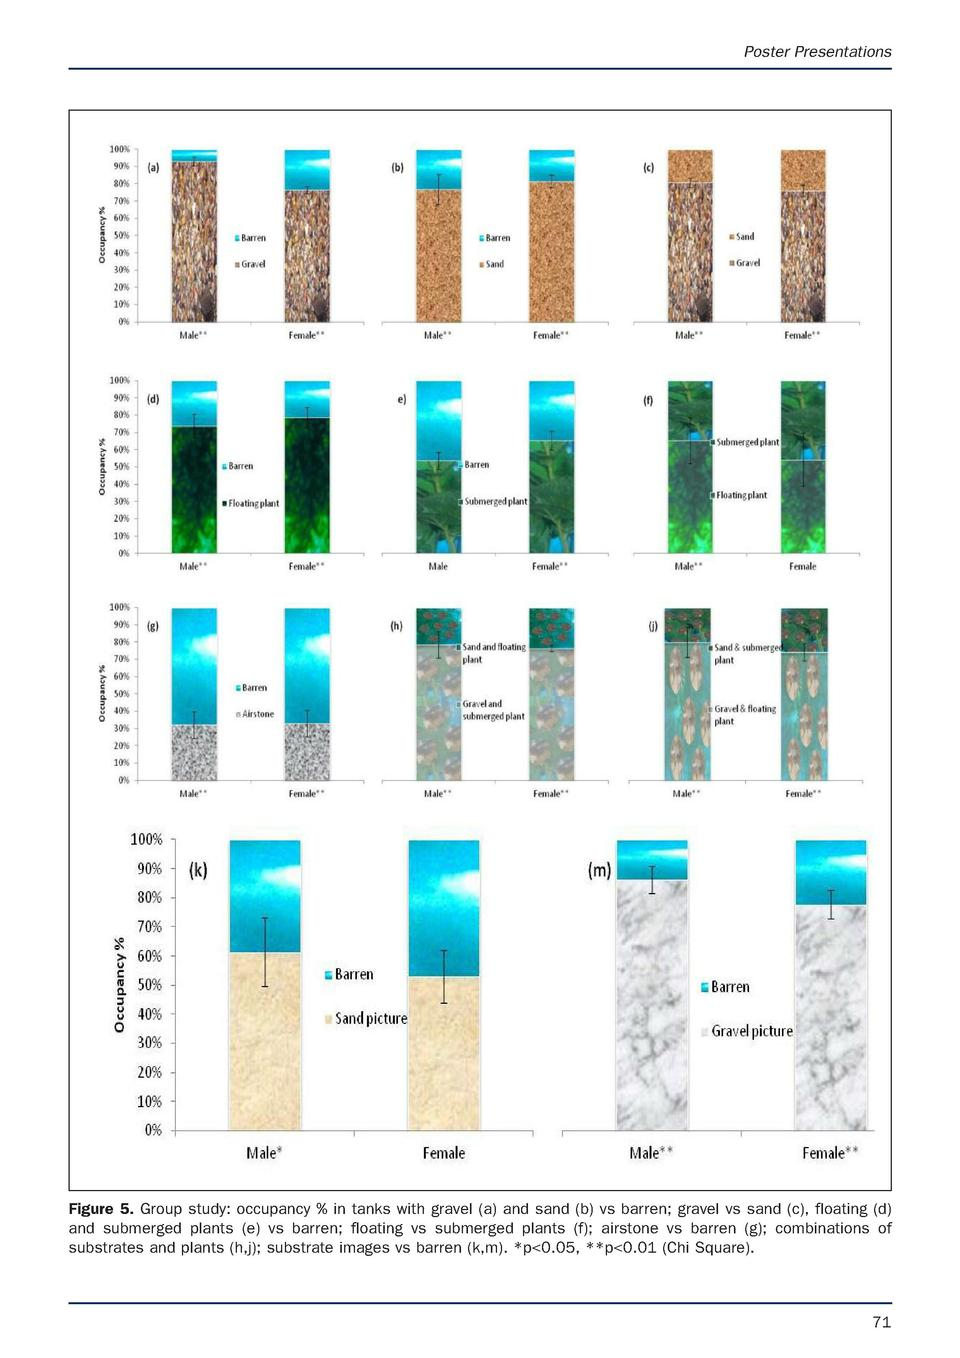 Poster Presentations  Figure 5. Group study  occupancy   in tanks with gravel  a  and sand  b  vs barren  gravel vs sand  ...